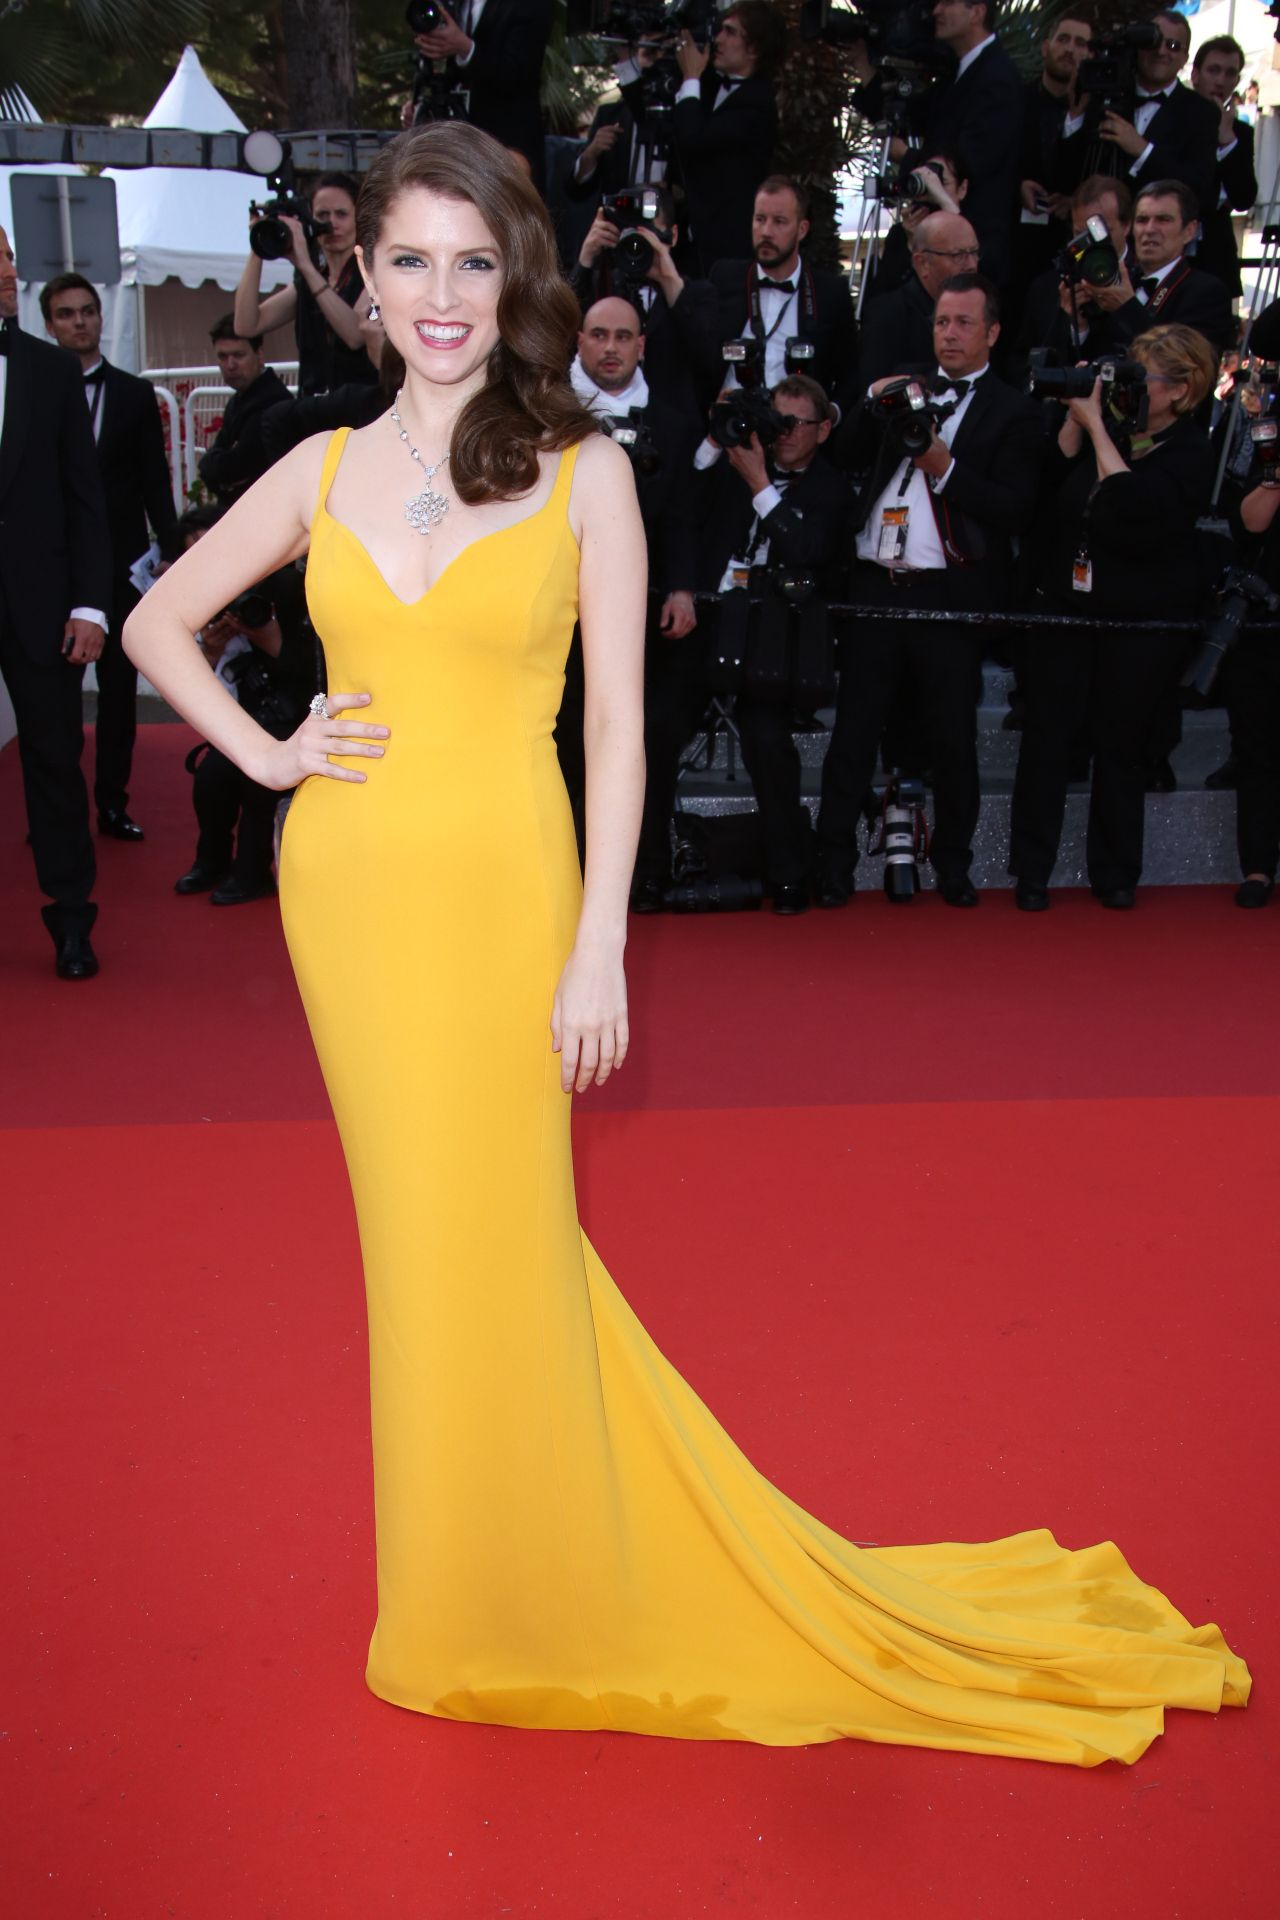 Anna Kendrick Cafe Society Opening Gala 2016 Cannes